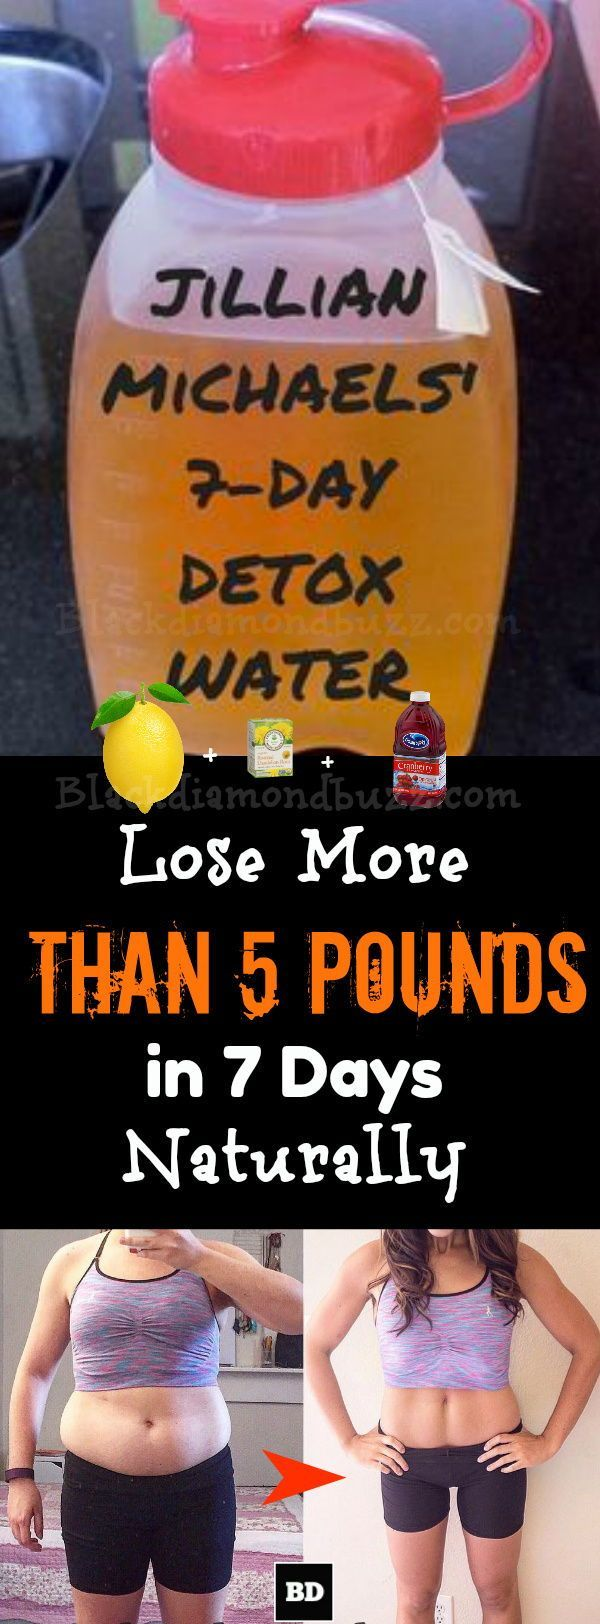 Jillian Michael's Detox Drink Recipes for Weight Loss Jillian Michaels Detox…